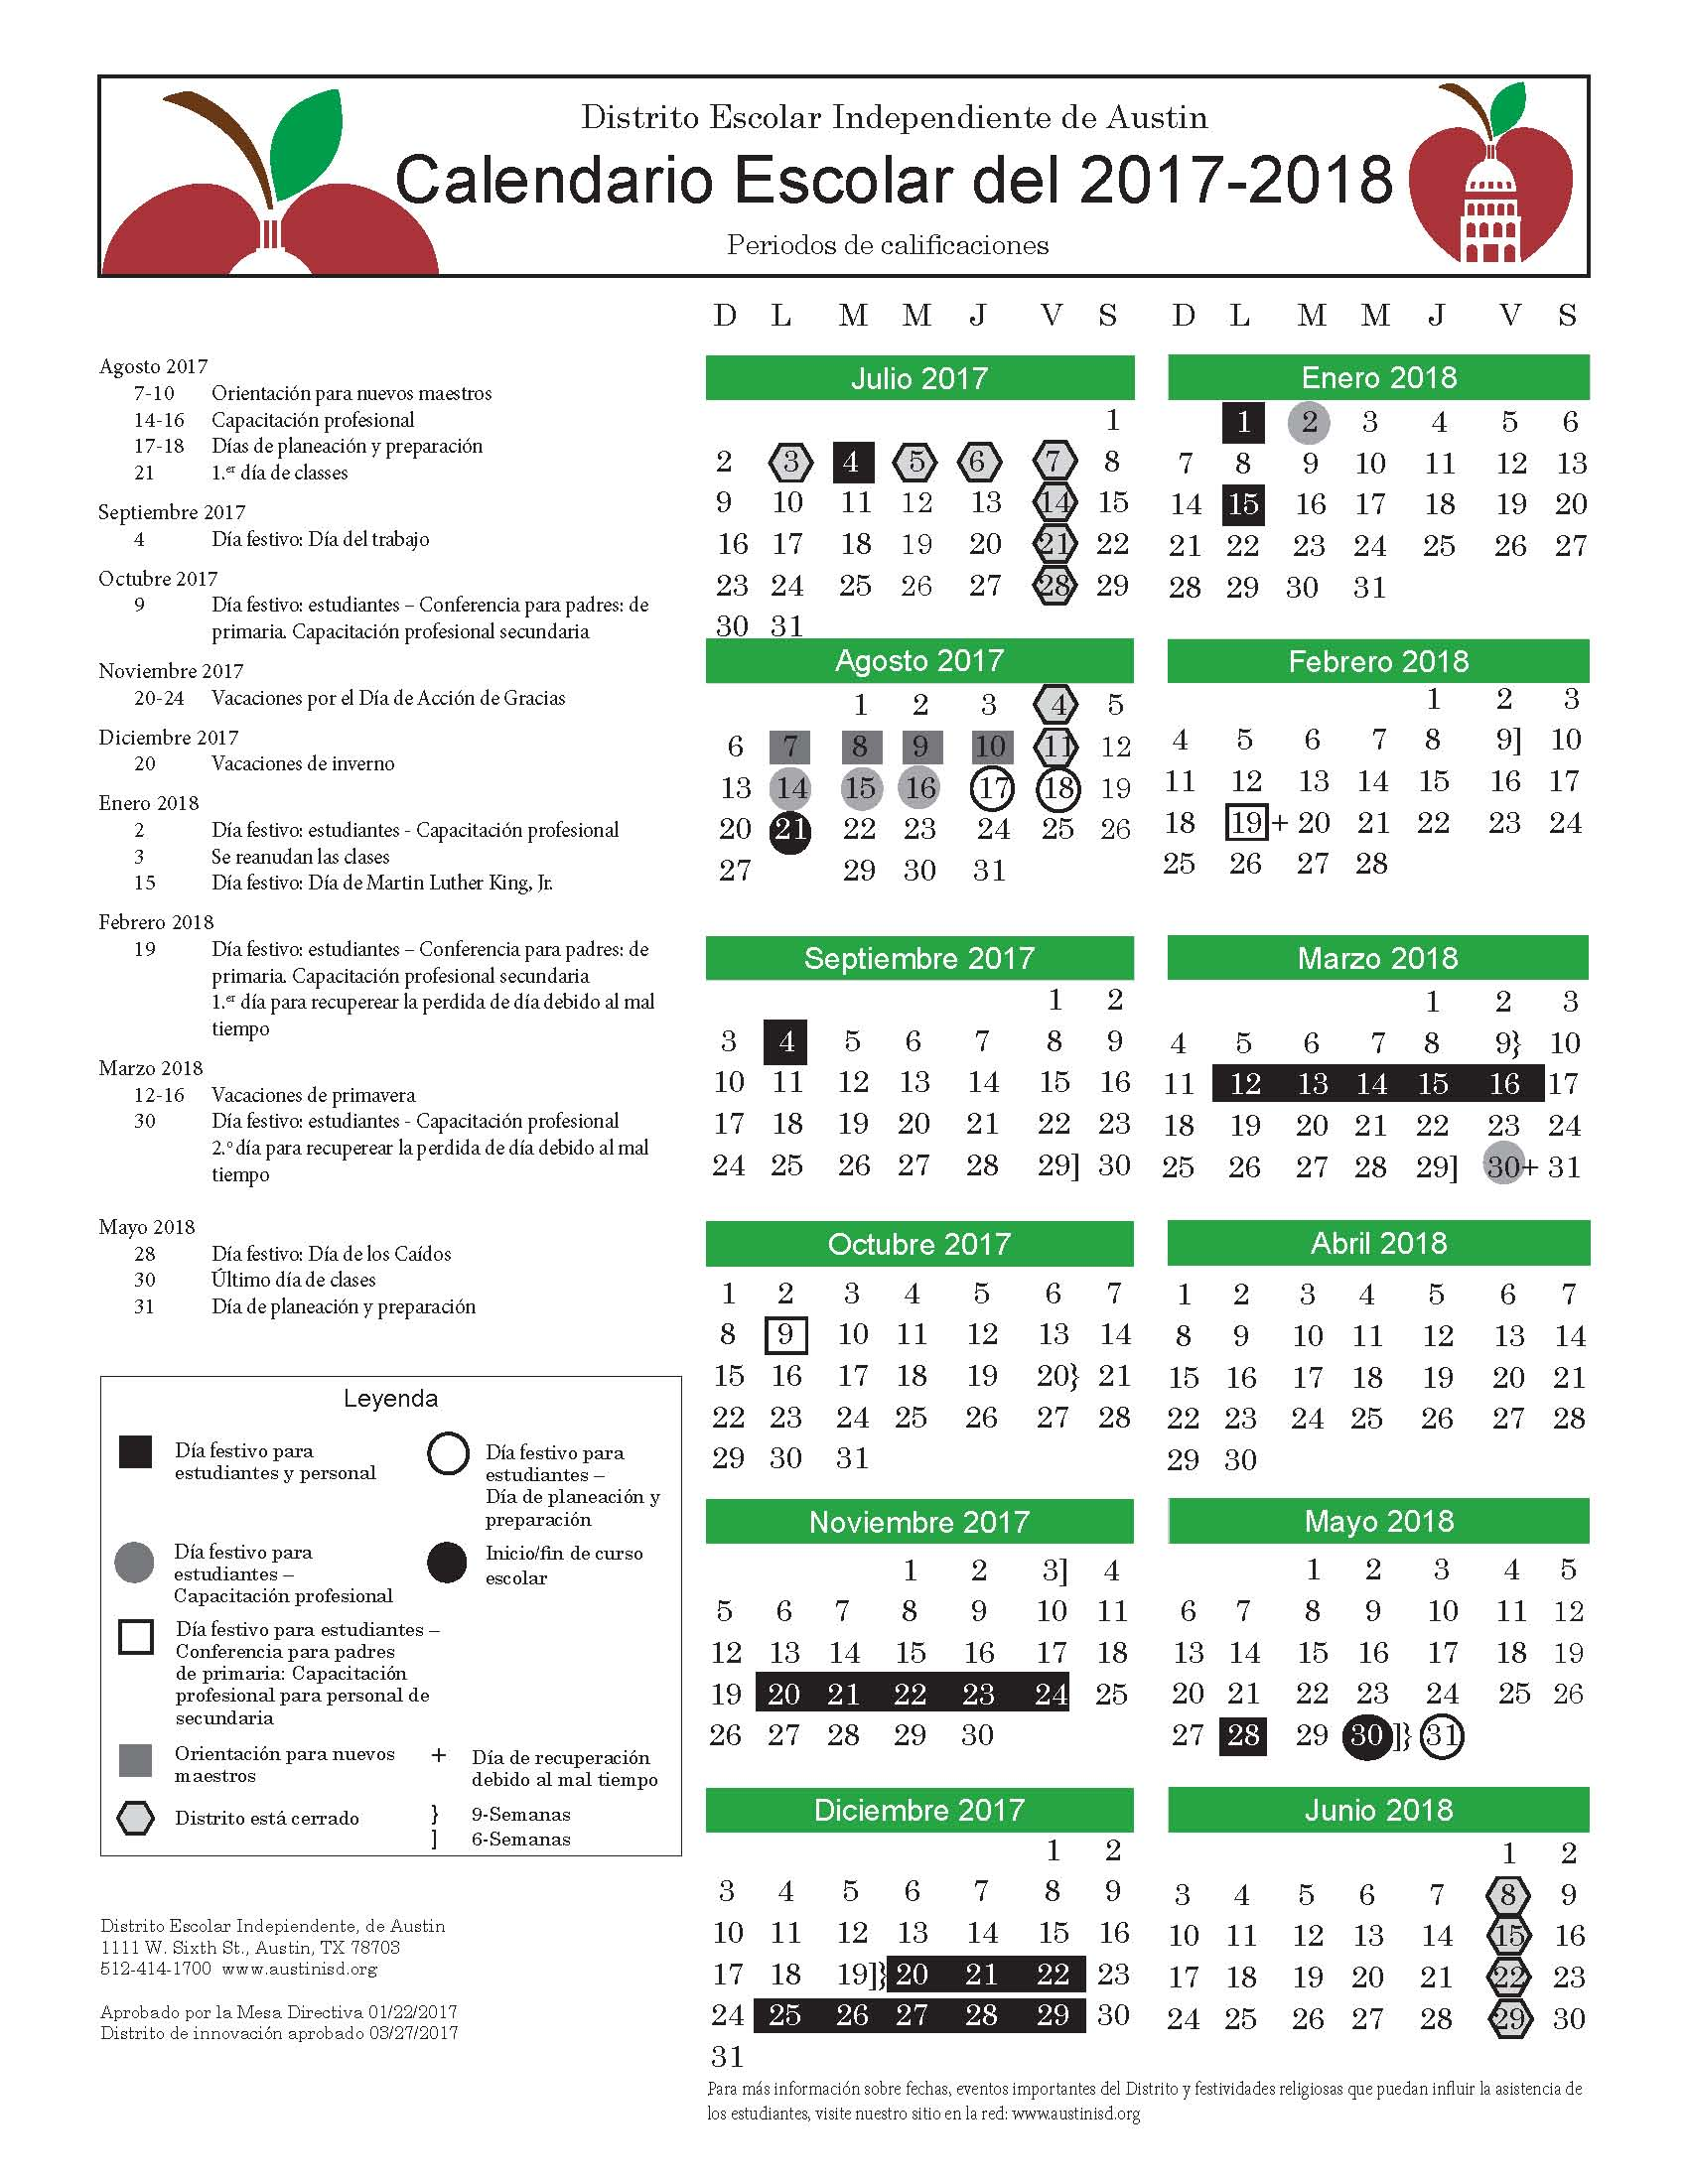 District Calendar in Spanish